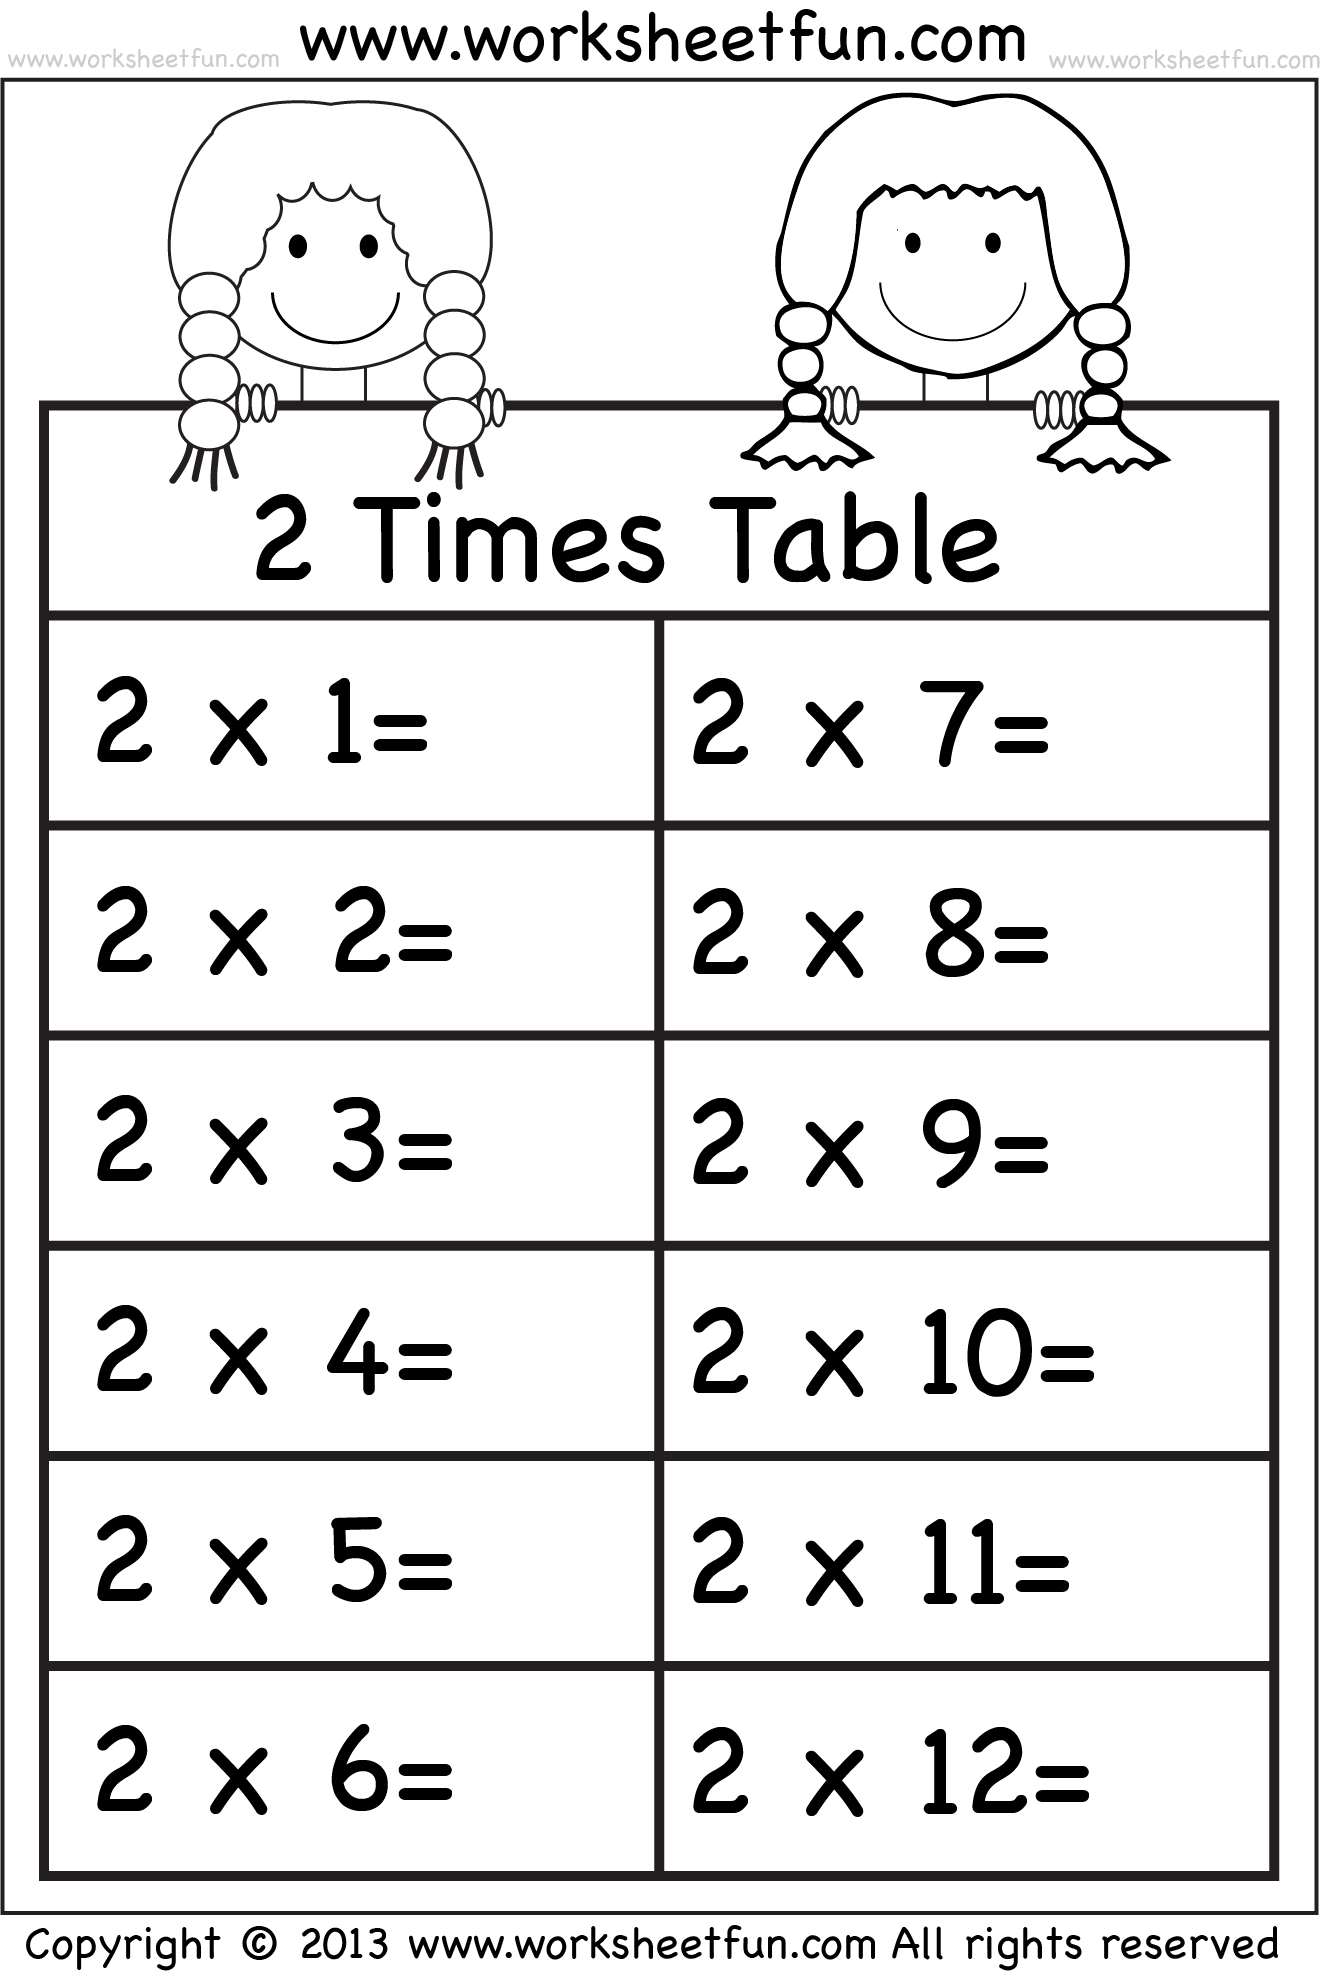 Times Tables Worksheets – 2, 3, 4, 5, 6, 7, 8, 9, 10, 11 and 12 ...